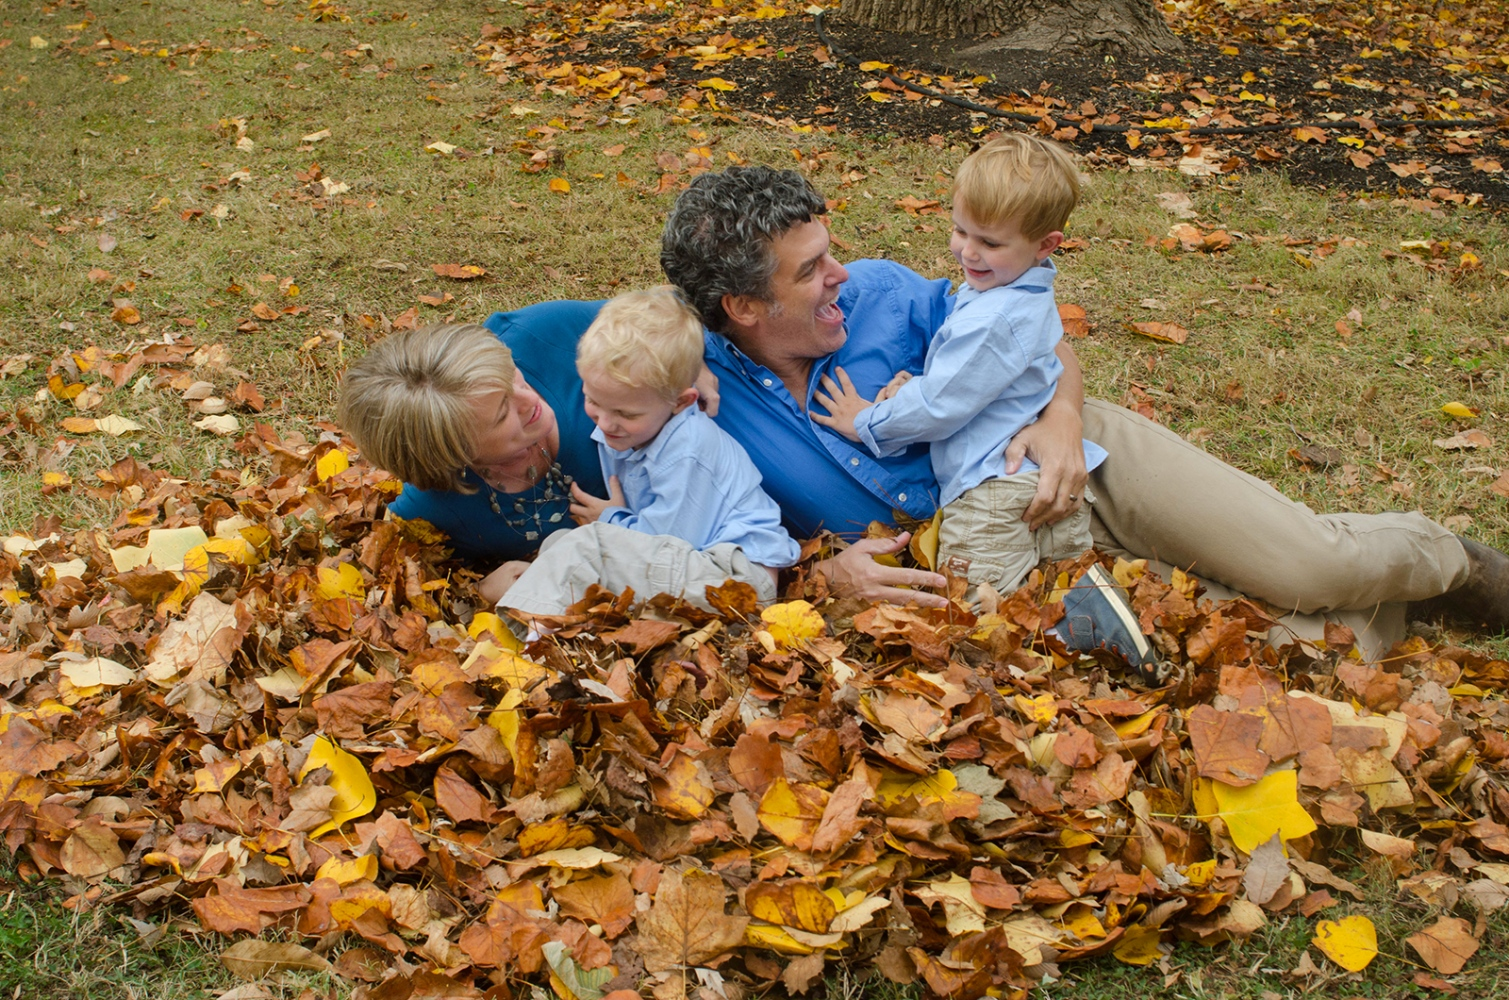 Art and Documentary Photography - Loading Family_leaves.jpg